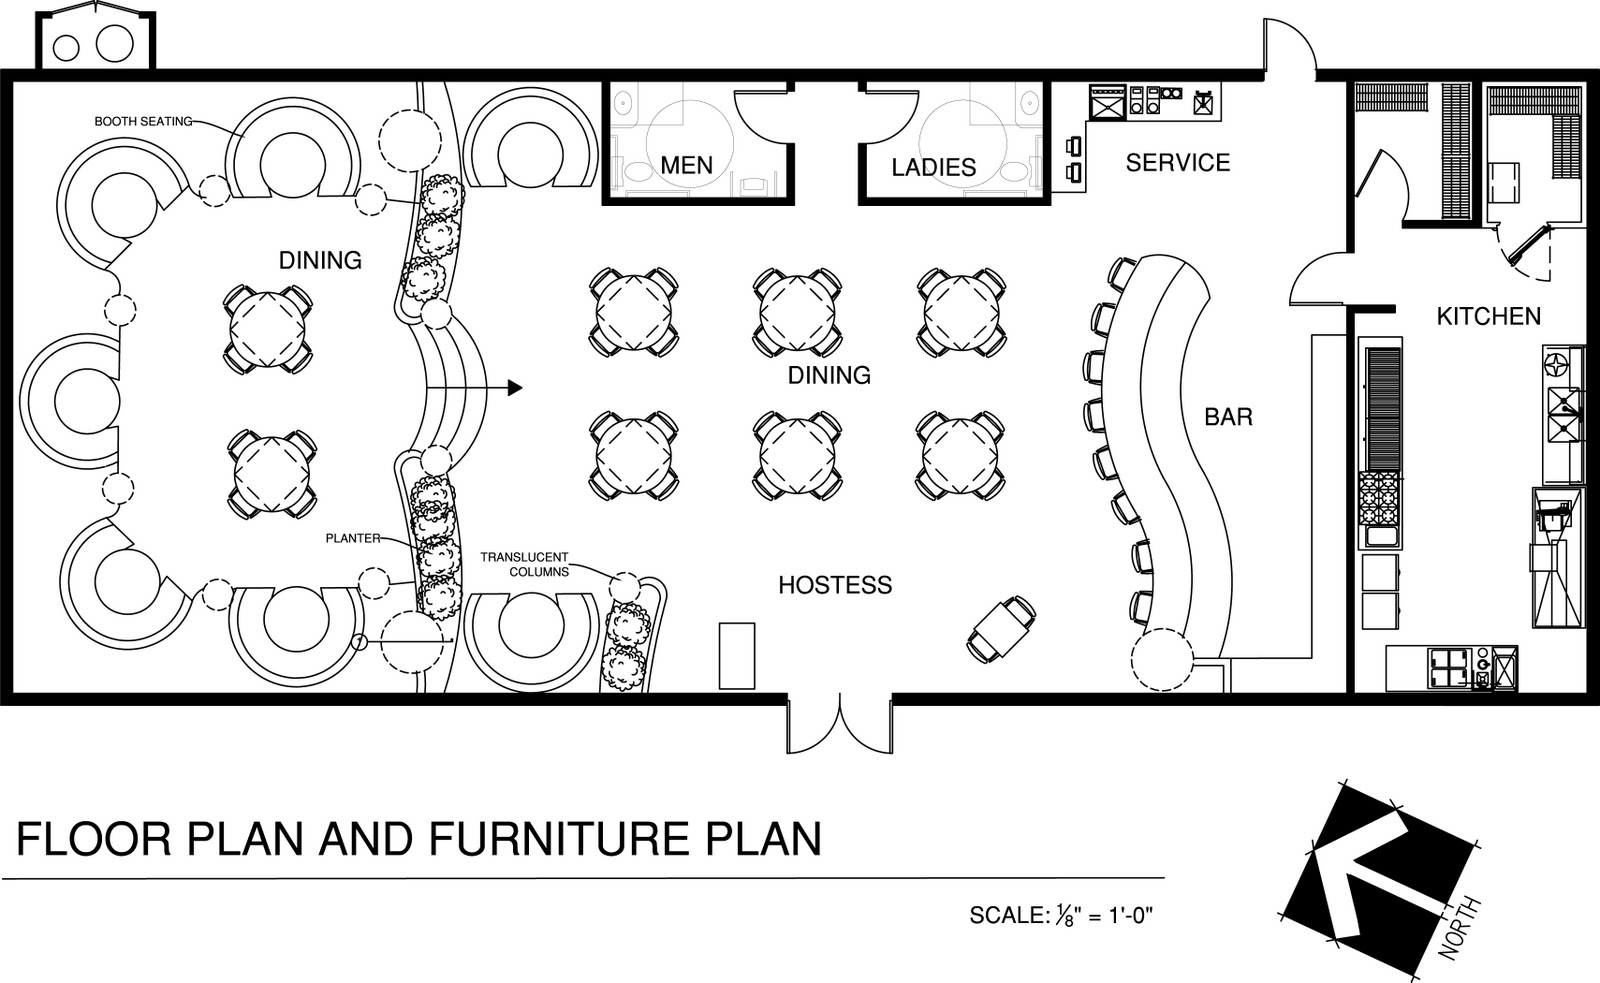 Designing A Restaurant Floor Plan